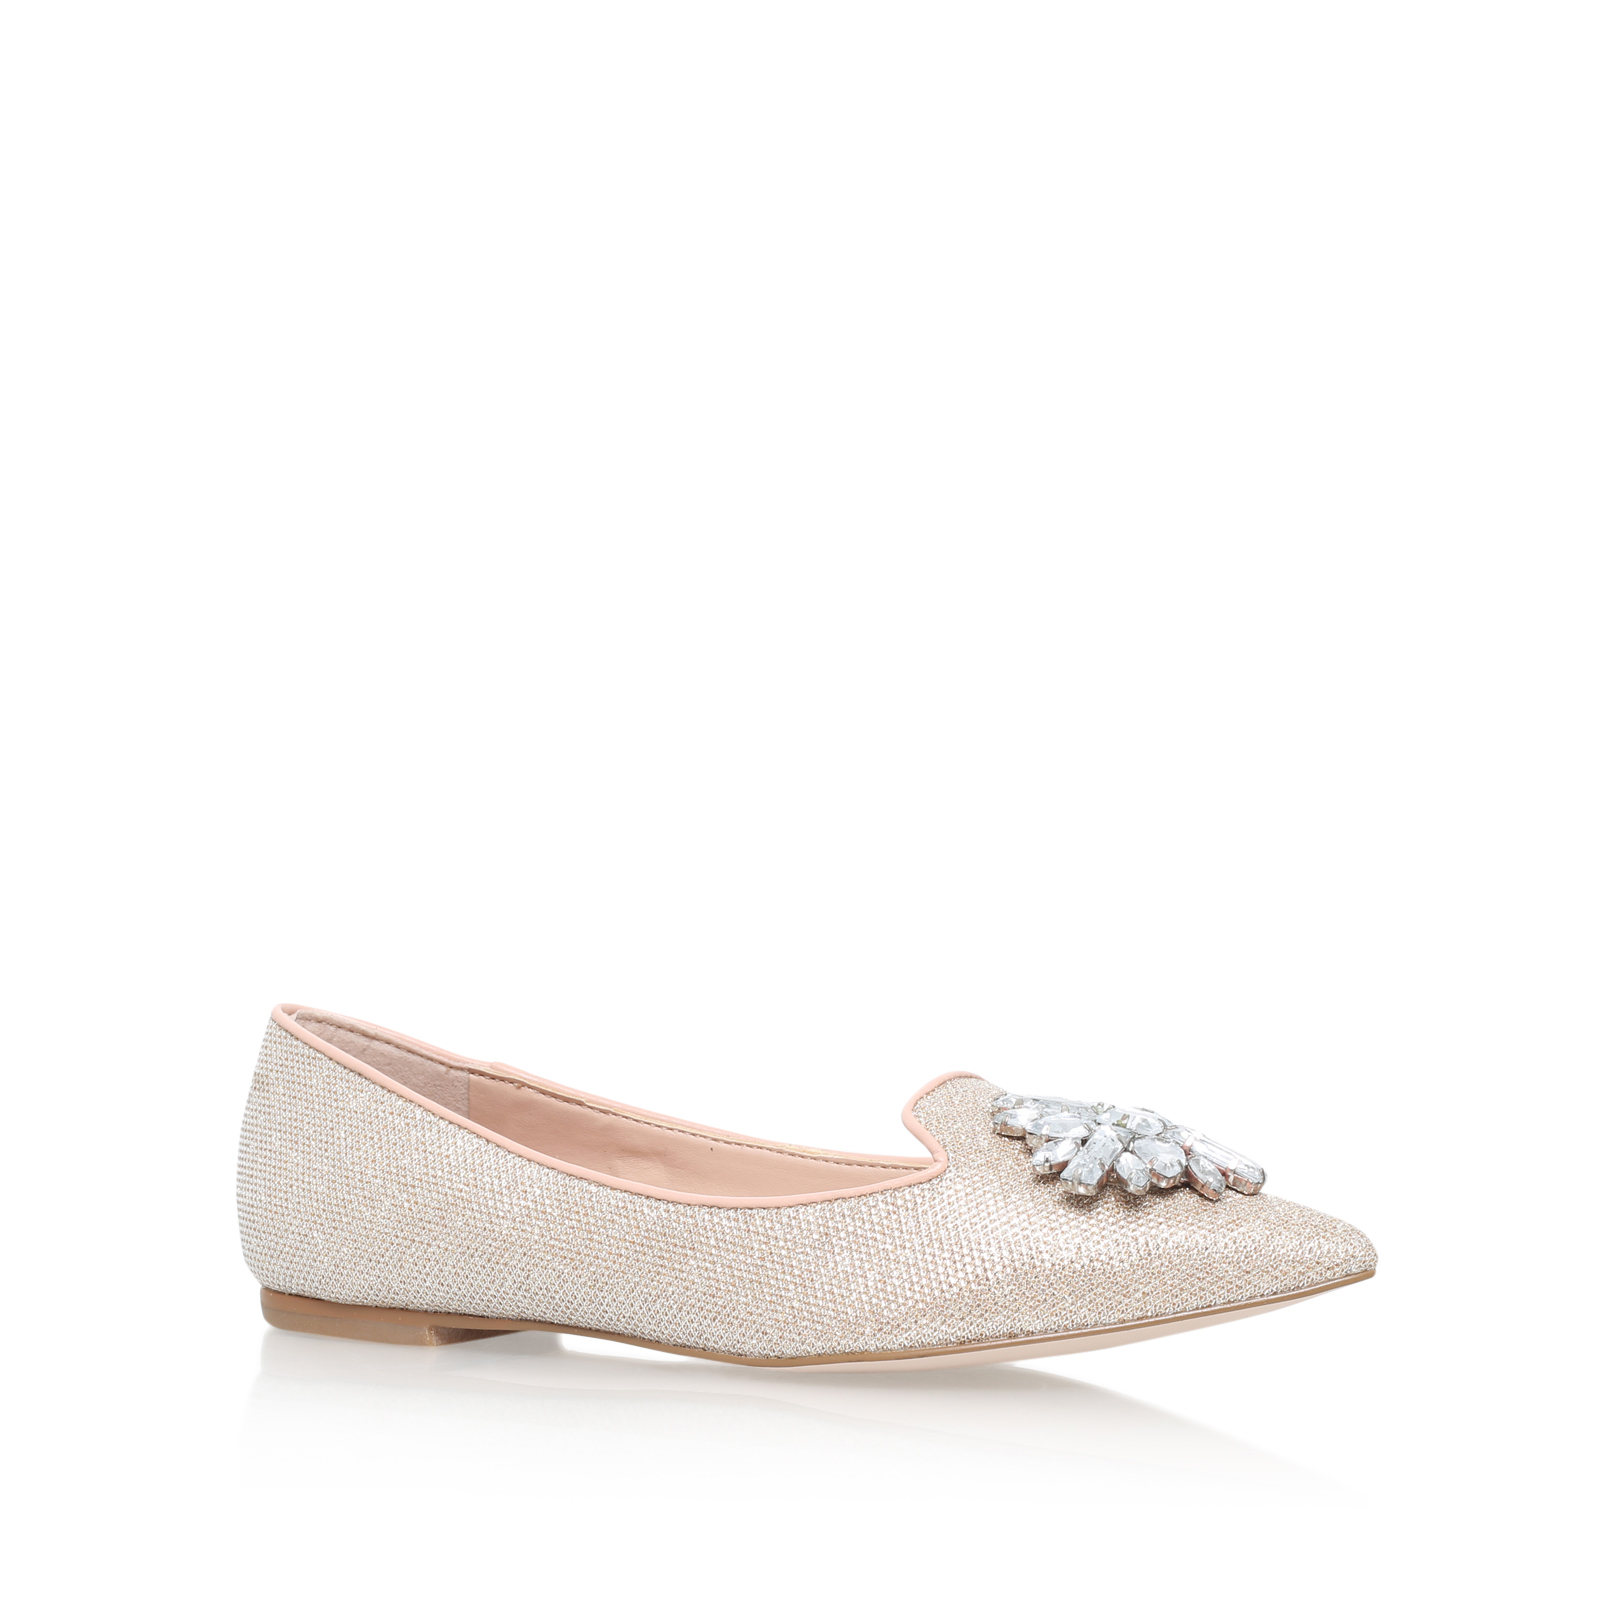 SLIP ON W/ DIAMANTE